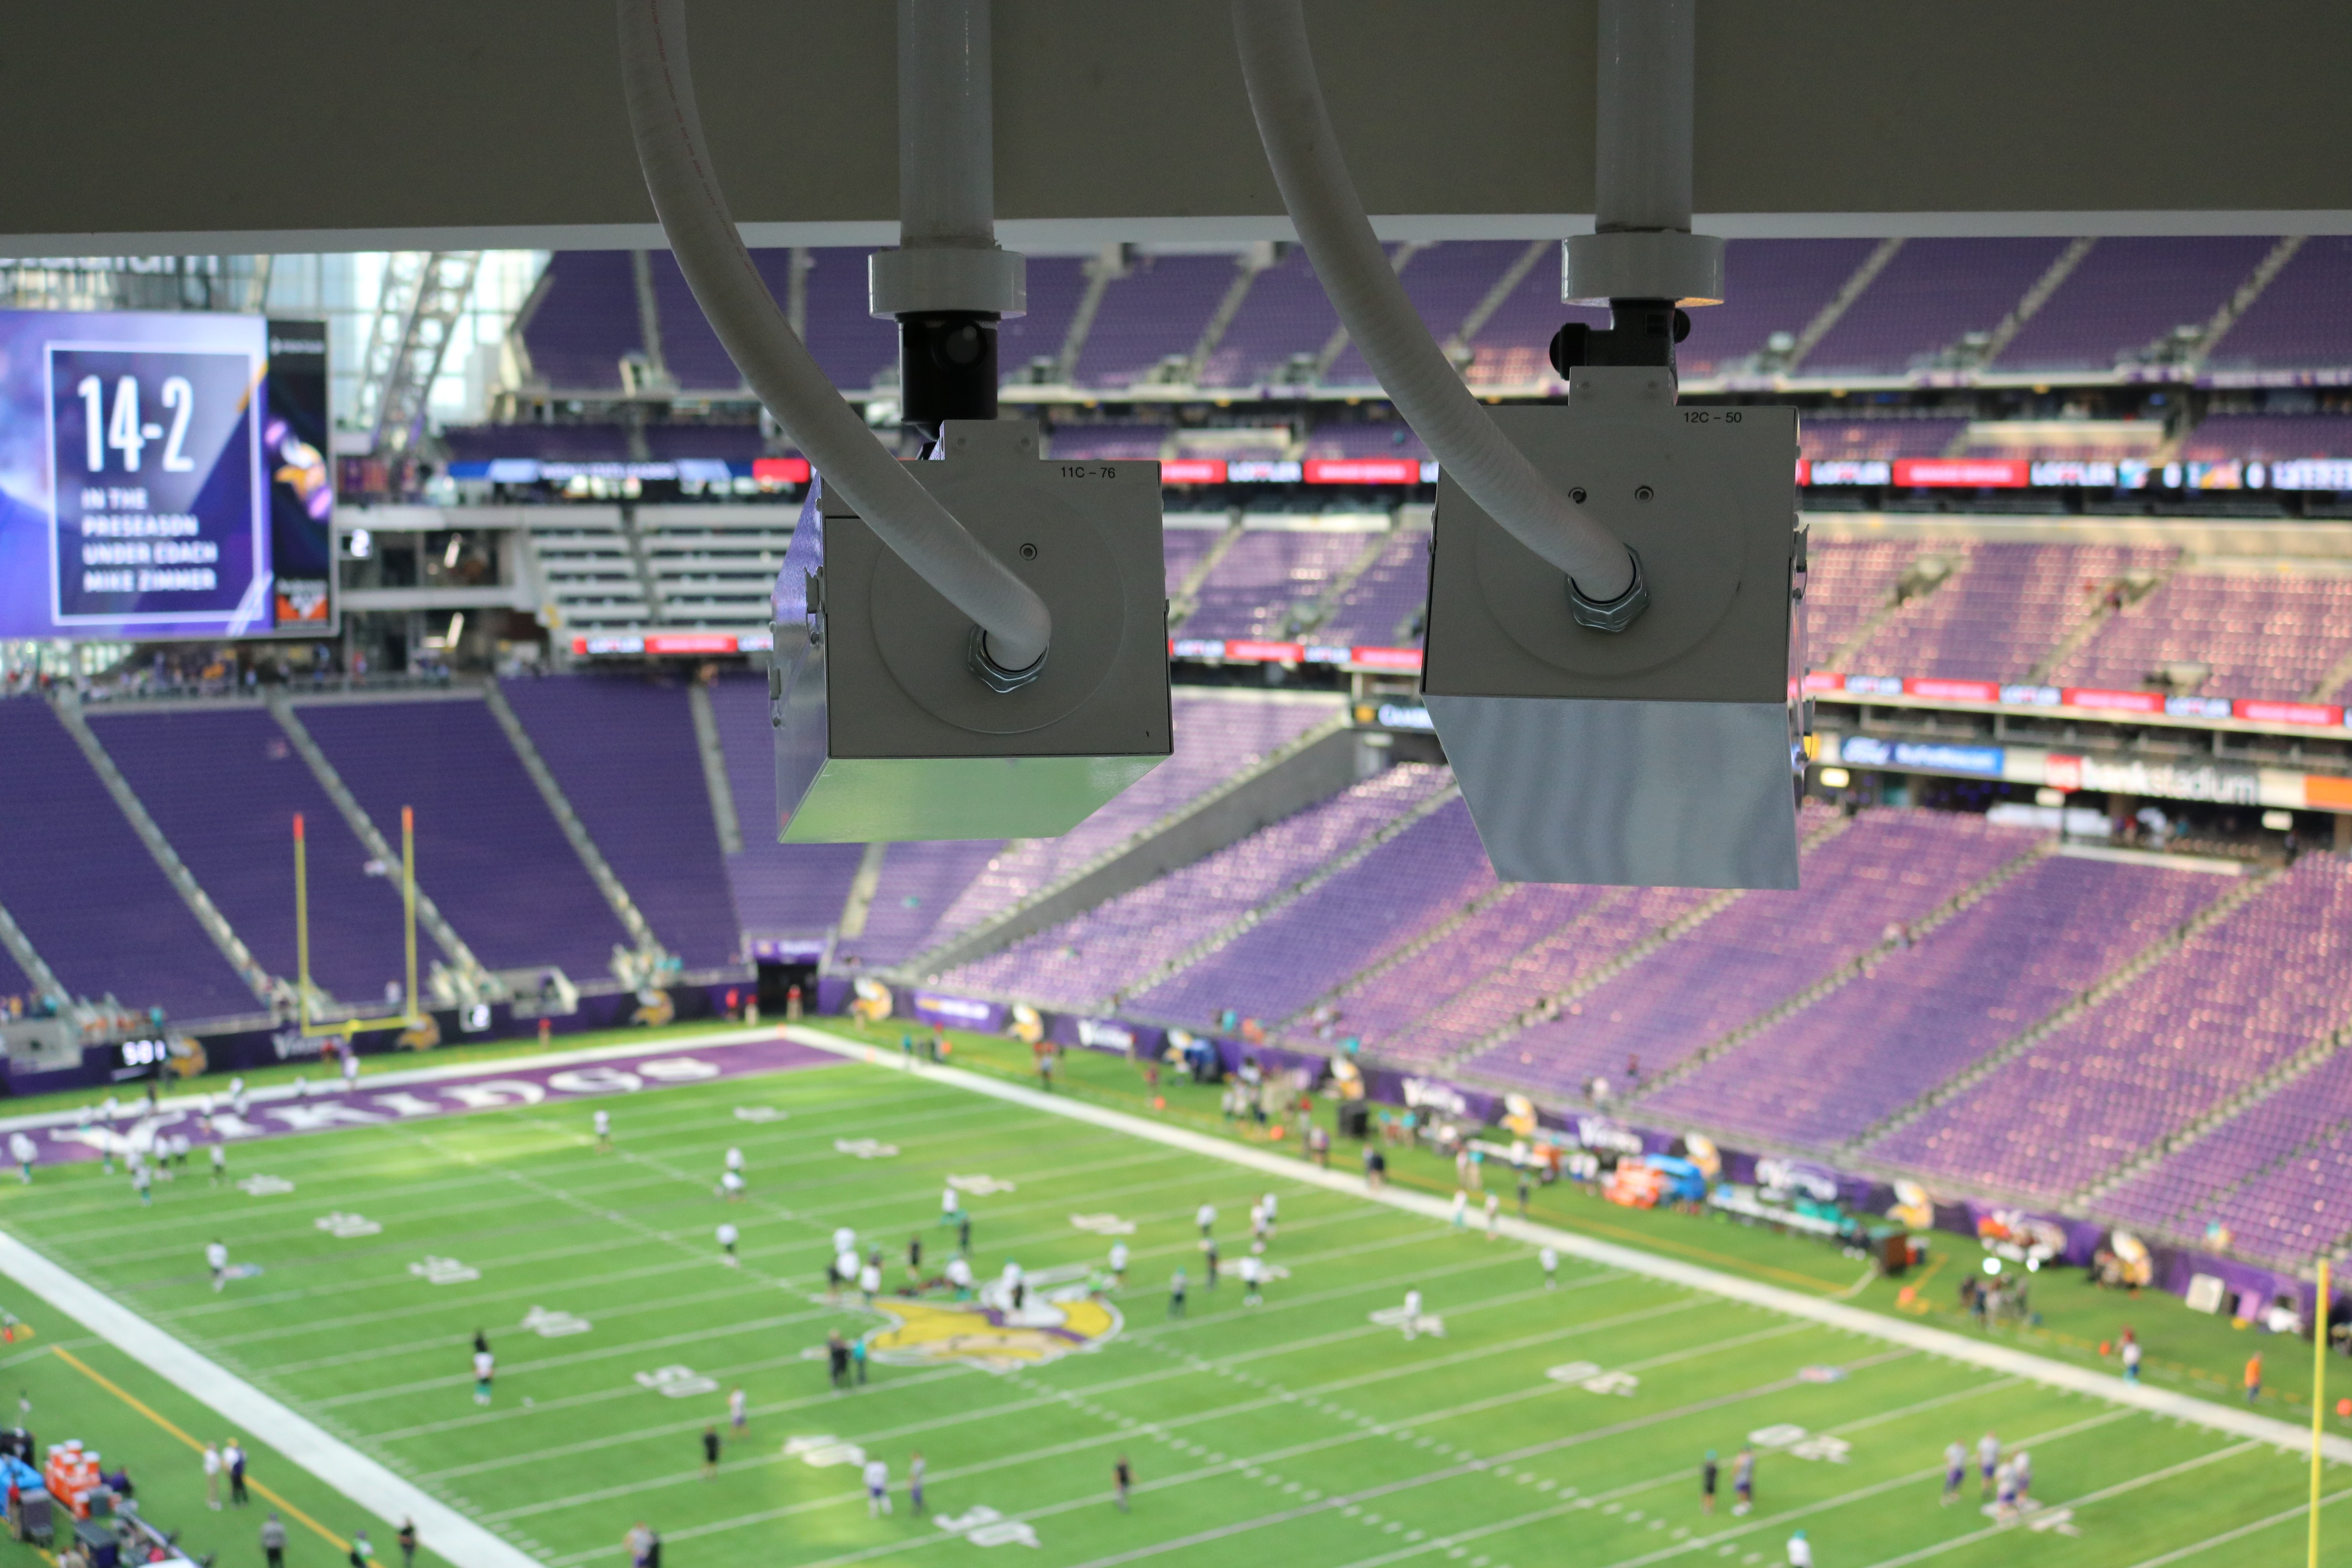 Intel and NFL extend video deal